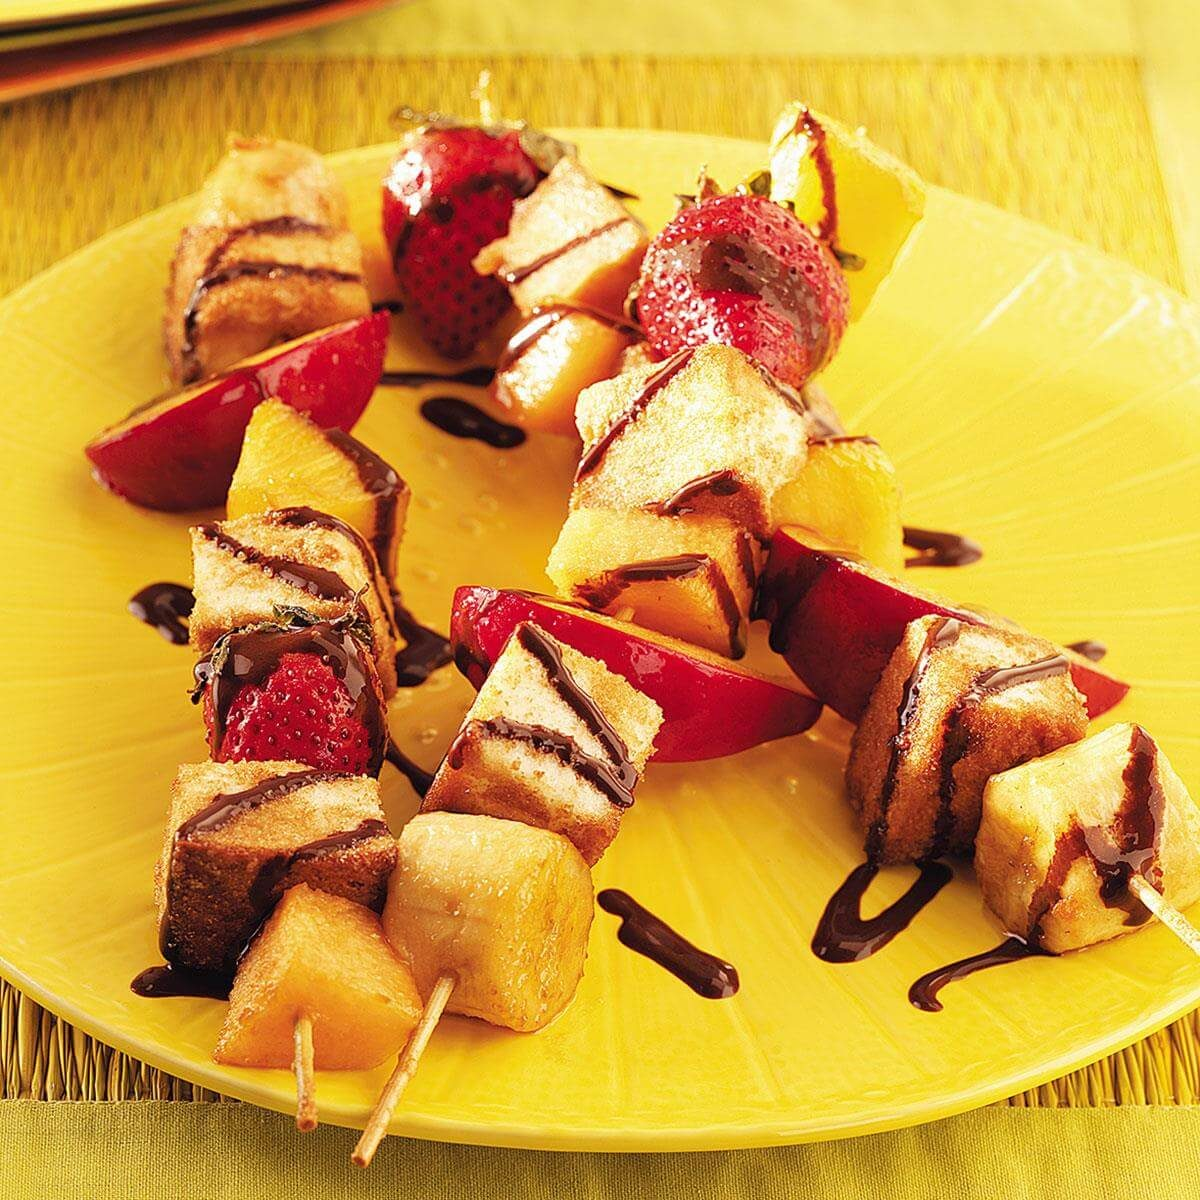 Grilled Fruit Skewers with Chocolate Syrup Recipe | Taste ...